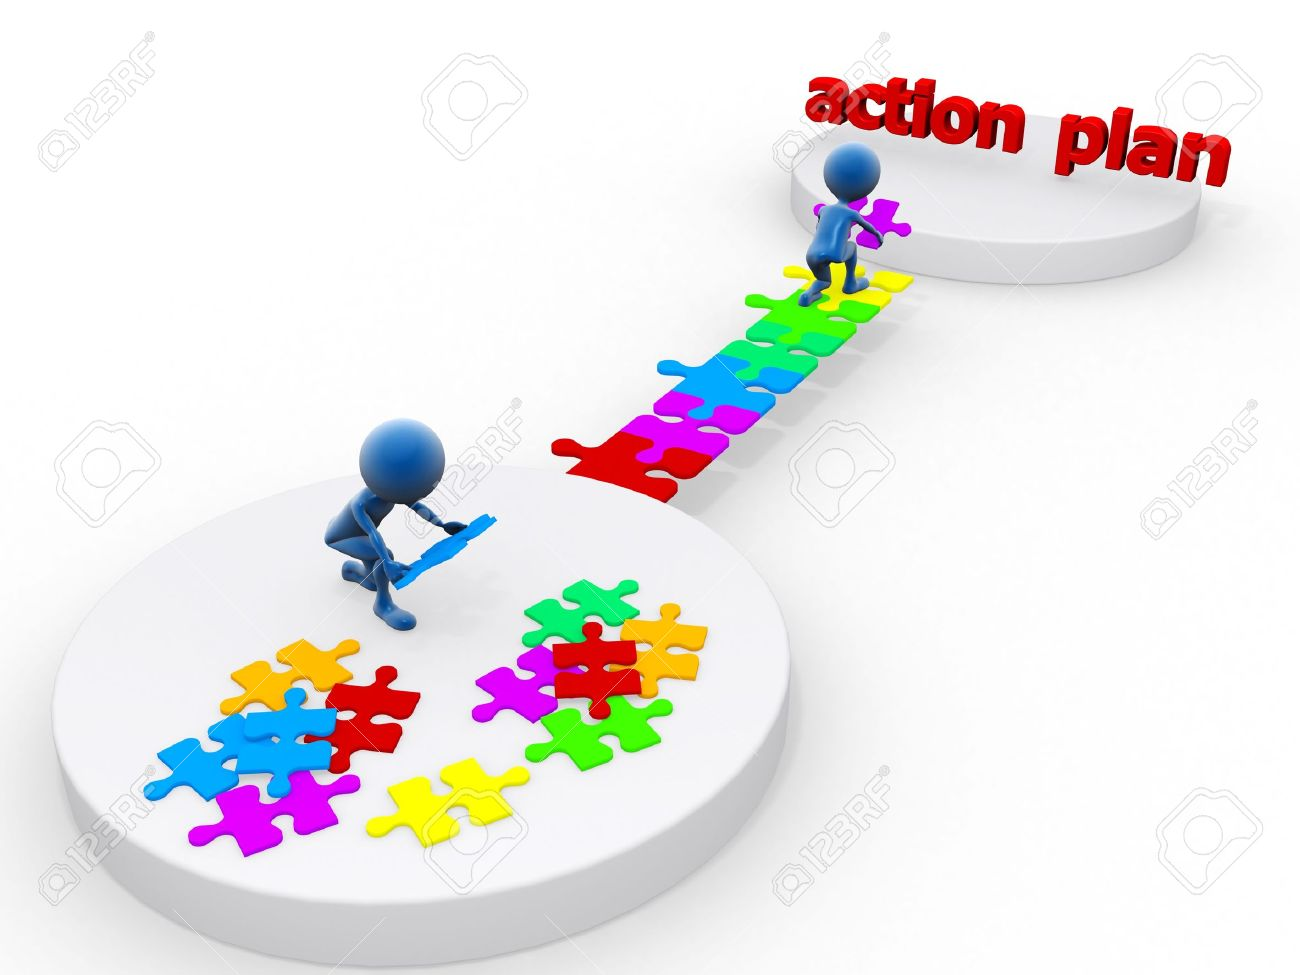 Action Plan Photo Picture And Royalty Free Image Image – Action Plans